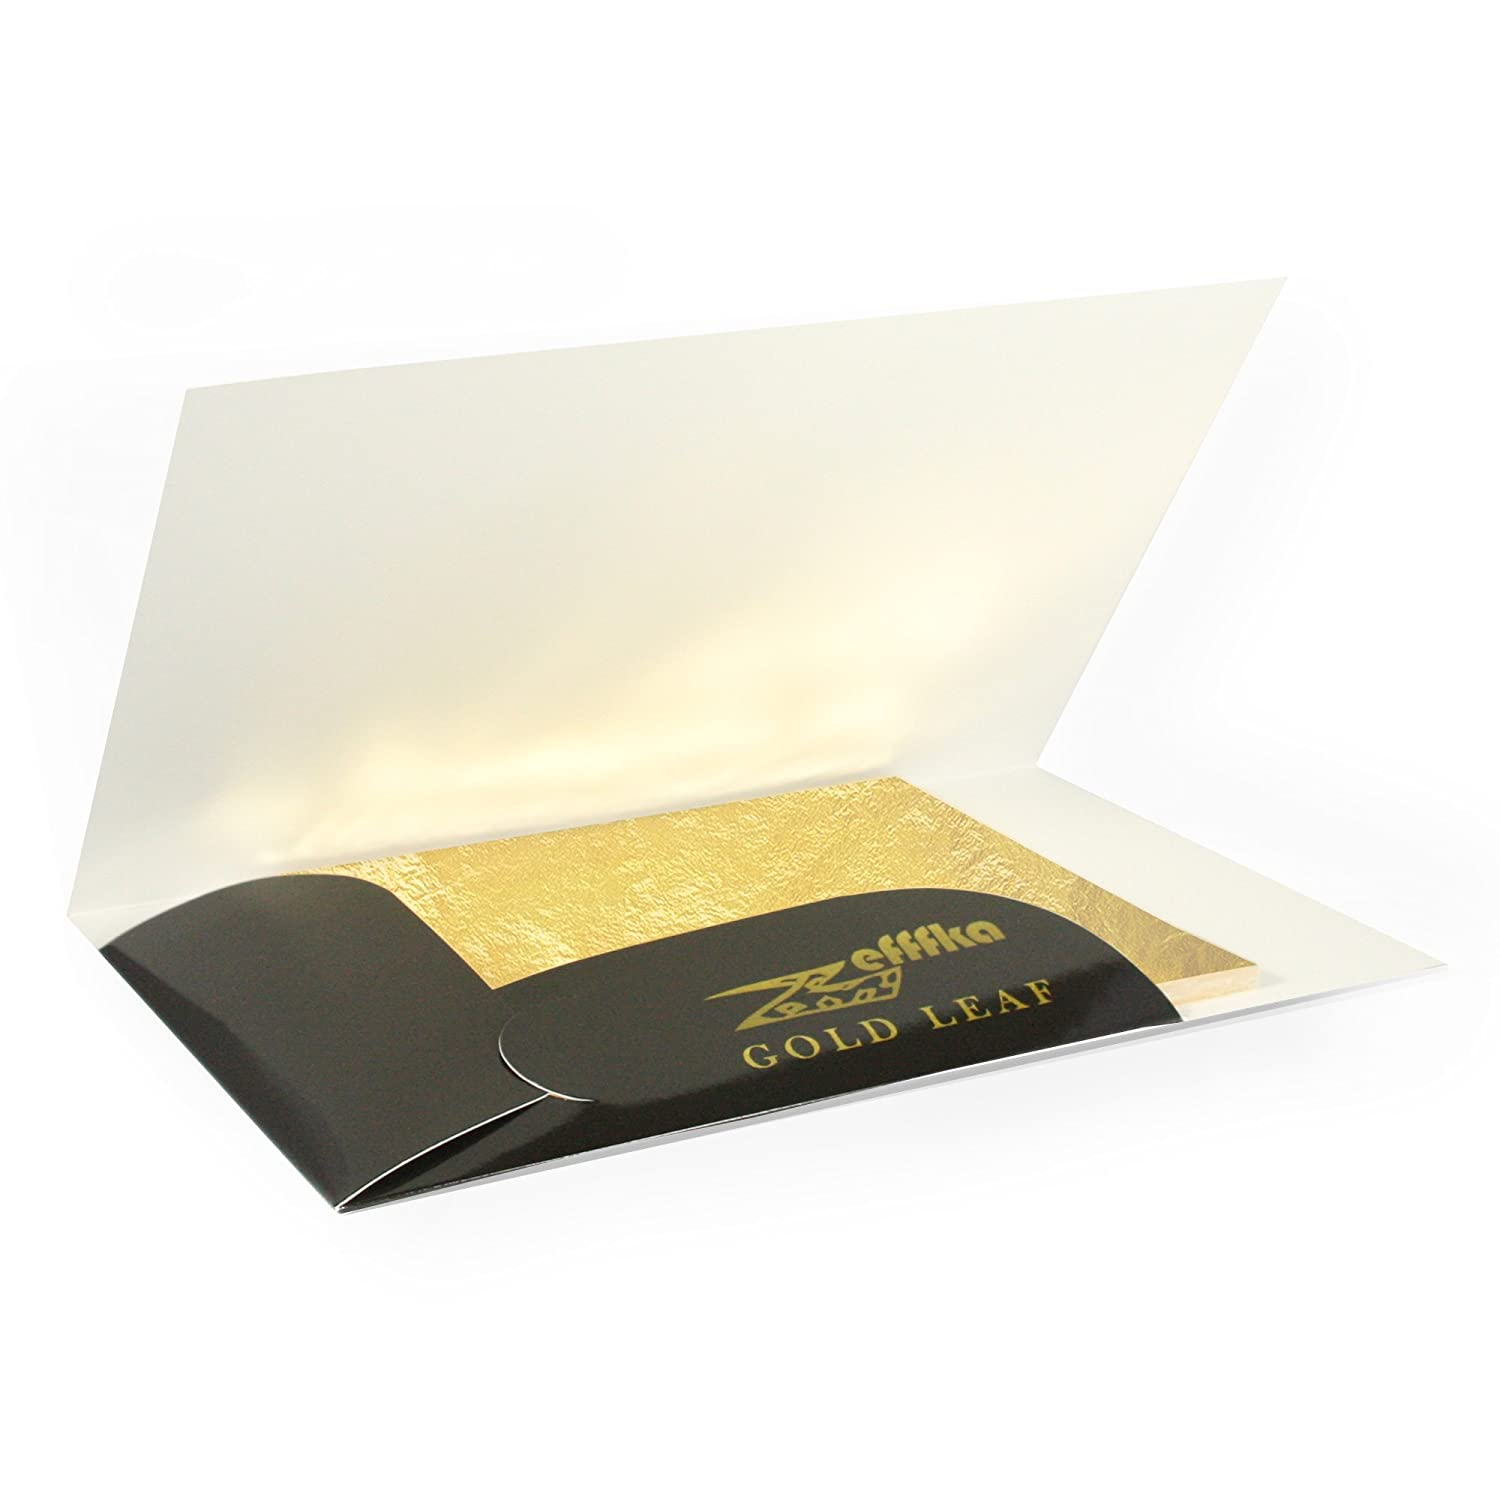 ZEFFFKA 100 Sheets Pack Gold Leaf Imitation High Quality 14x14cm